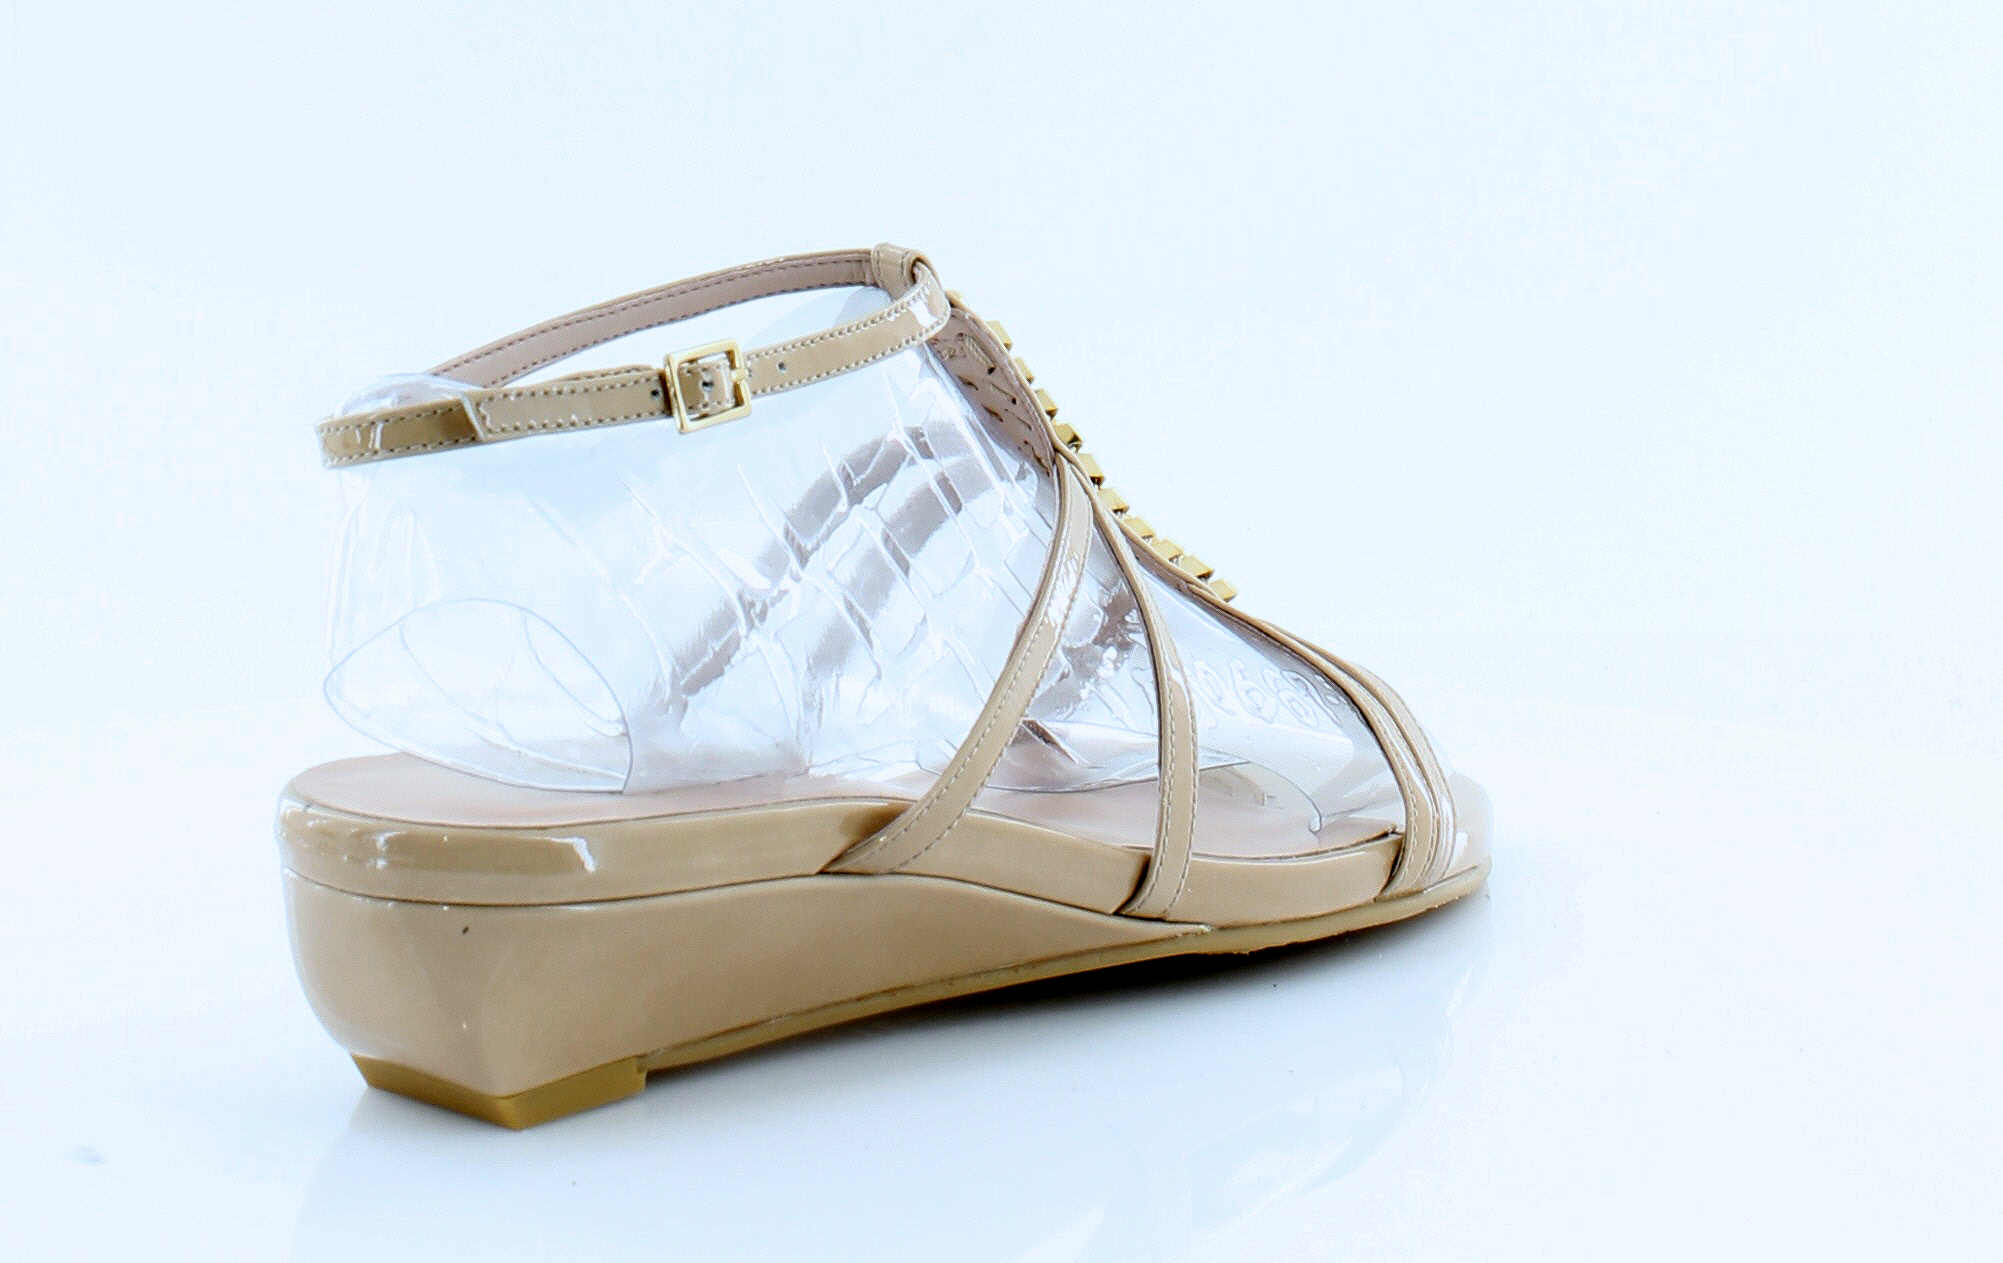 Stuart-Weitzman-New-Tiffy-Beige-Womens-Shoes-Size-7-5-M-Sandals-MSRP